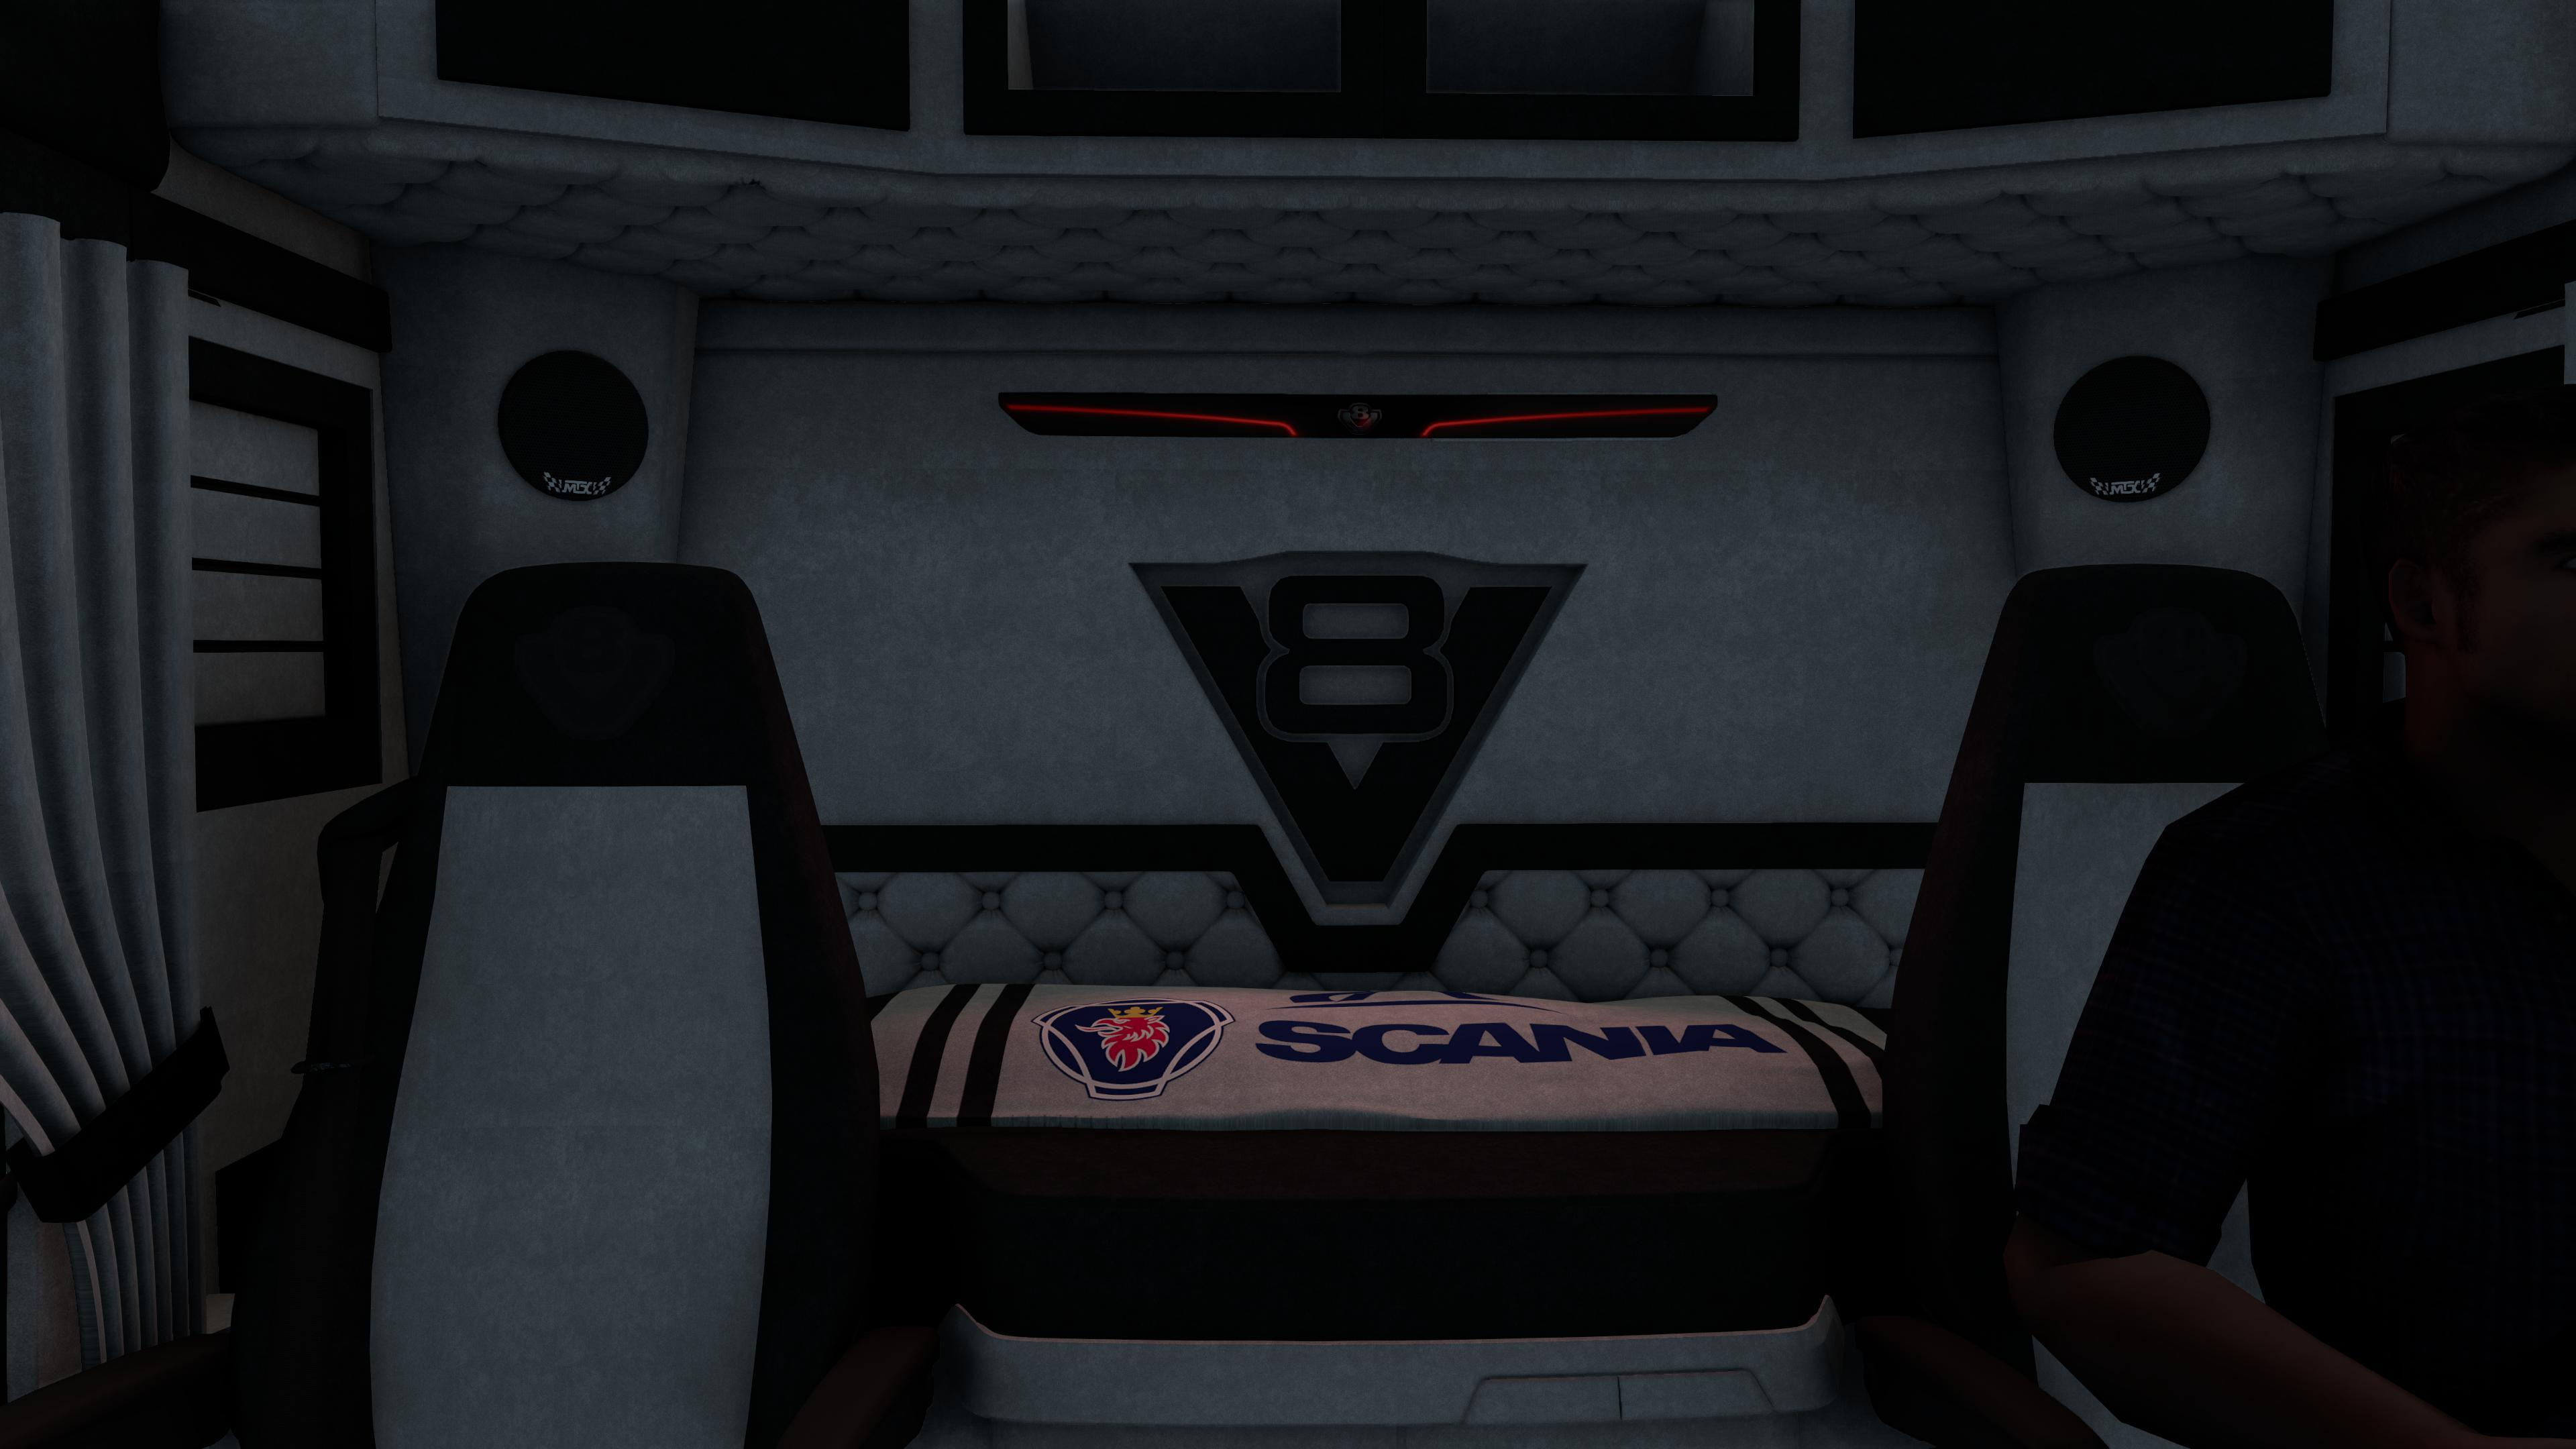 ETS2 - Scania S New Interior (1.39.x)